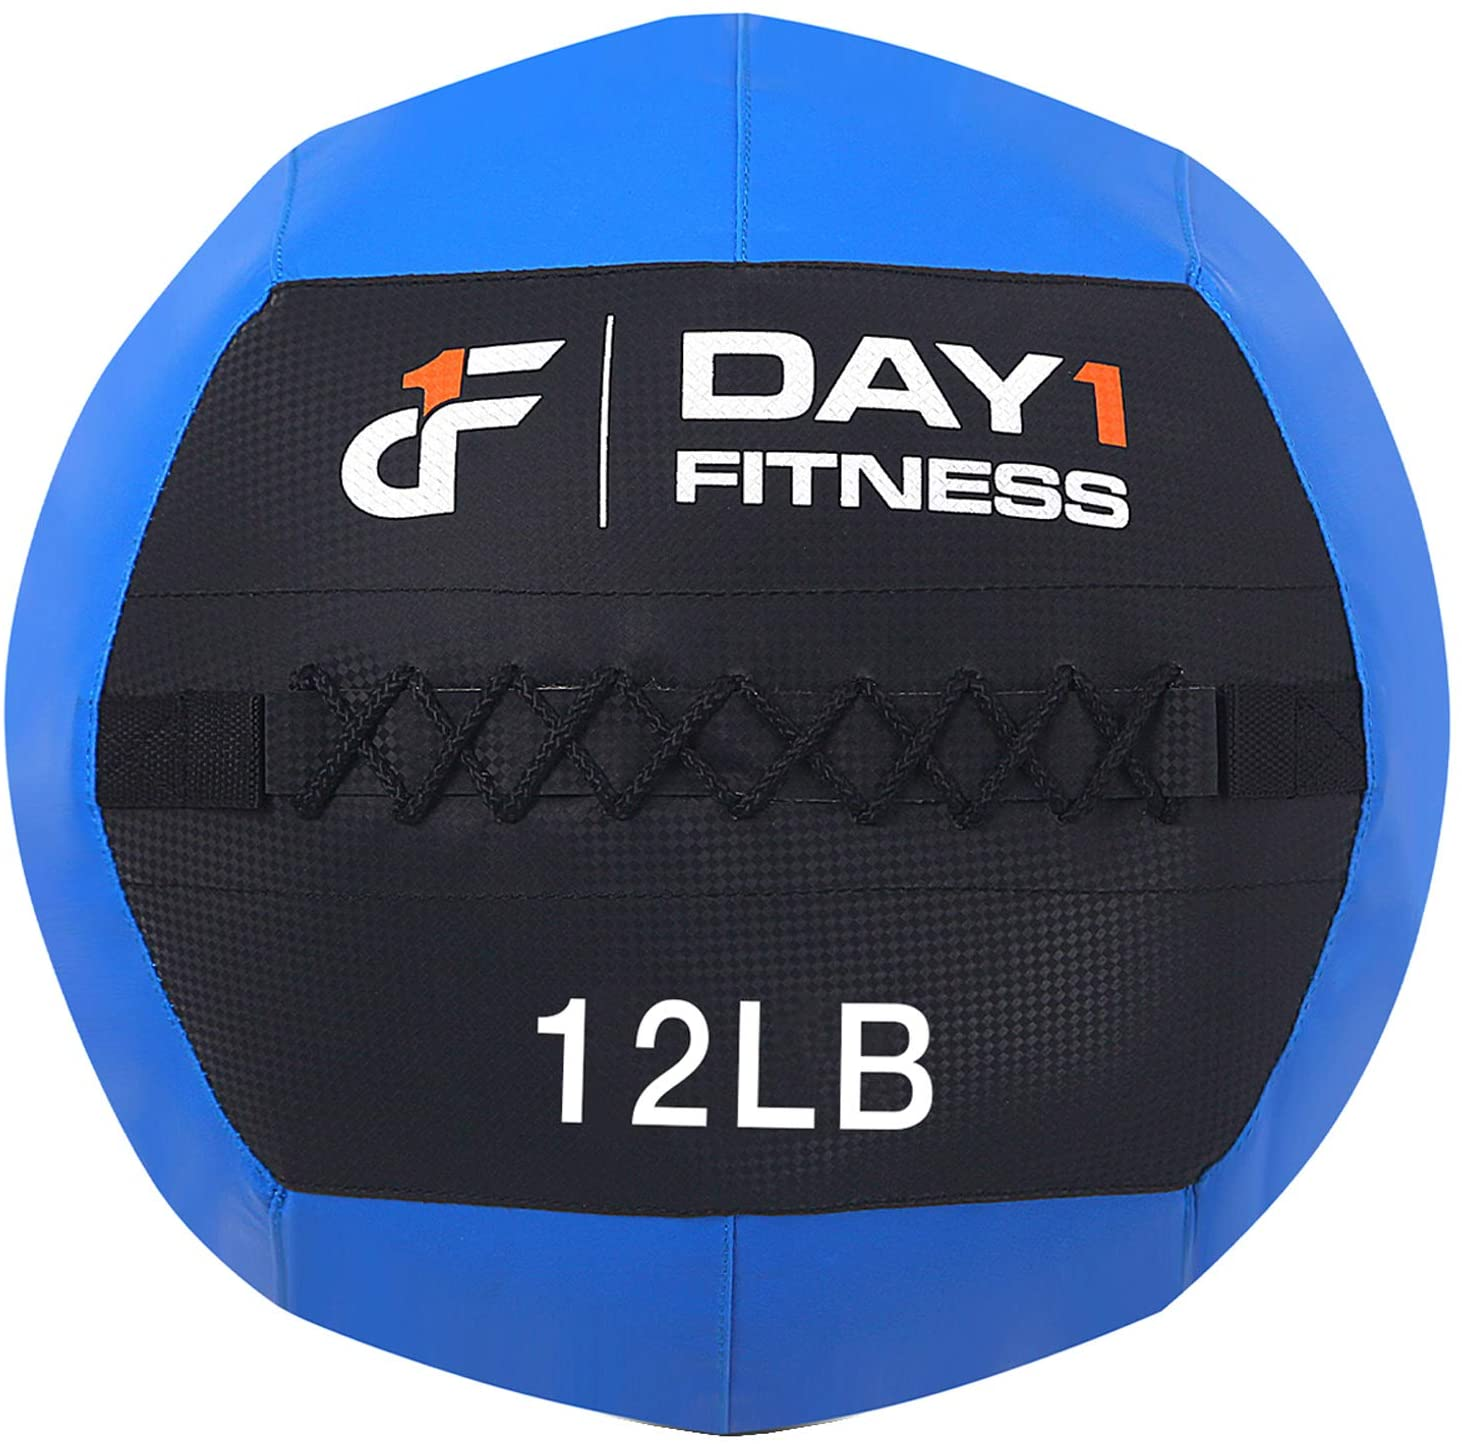 Day 1 Fitness Ball